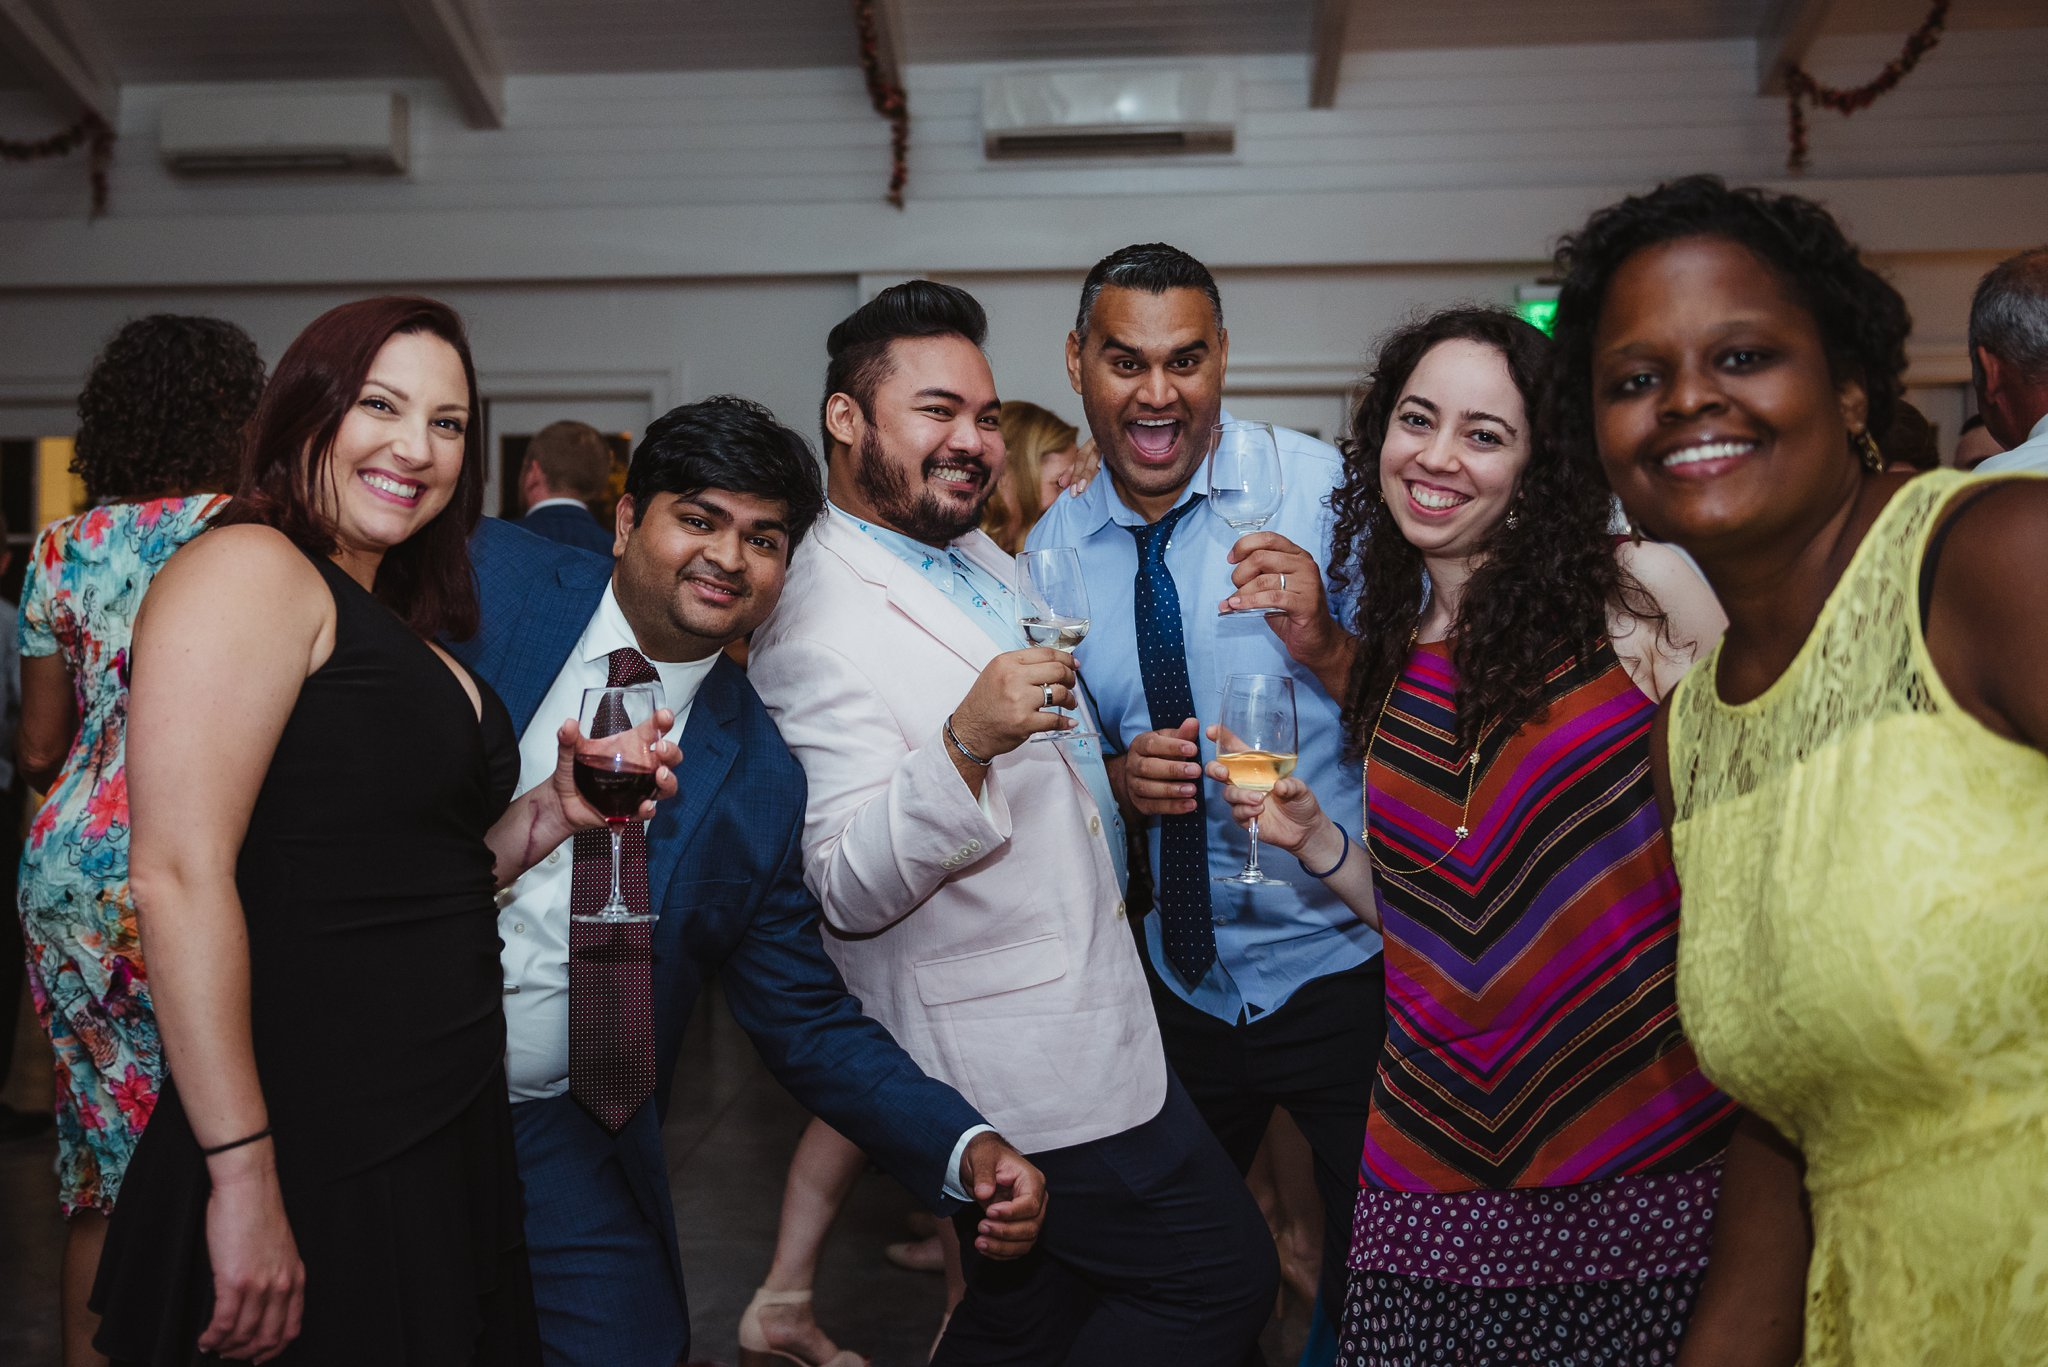 Guests enjoyed themselves during the wedding reception at the Merrimon Wynne in Raleigh, photos by Rose Trail Images.